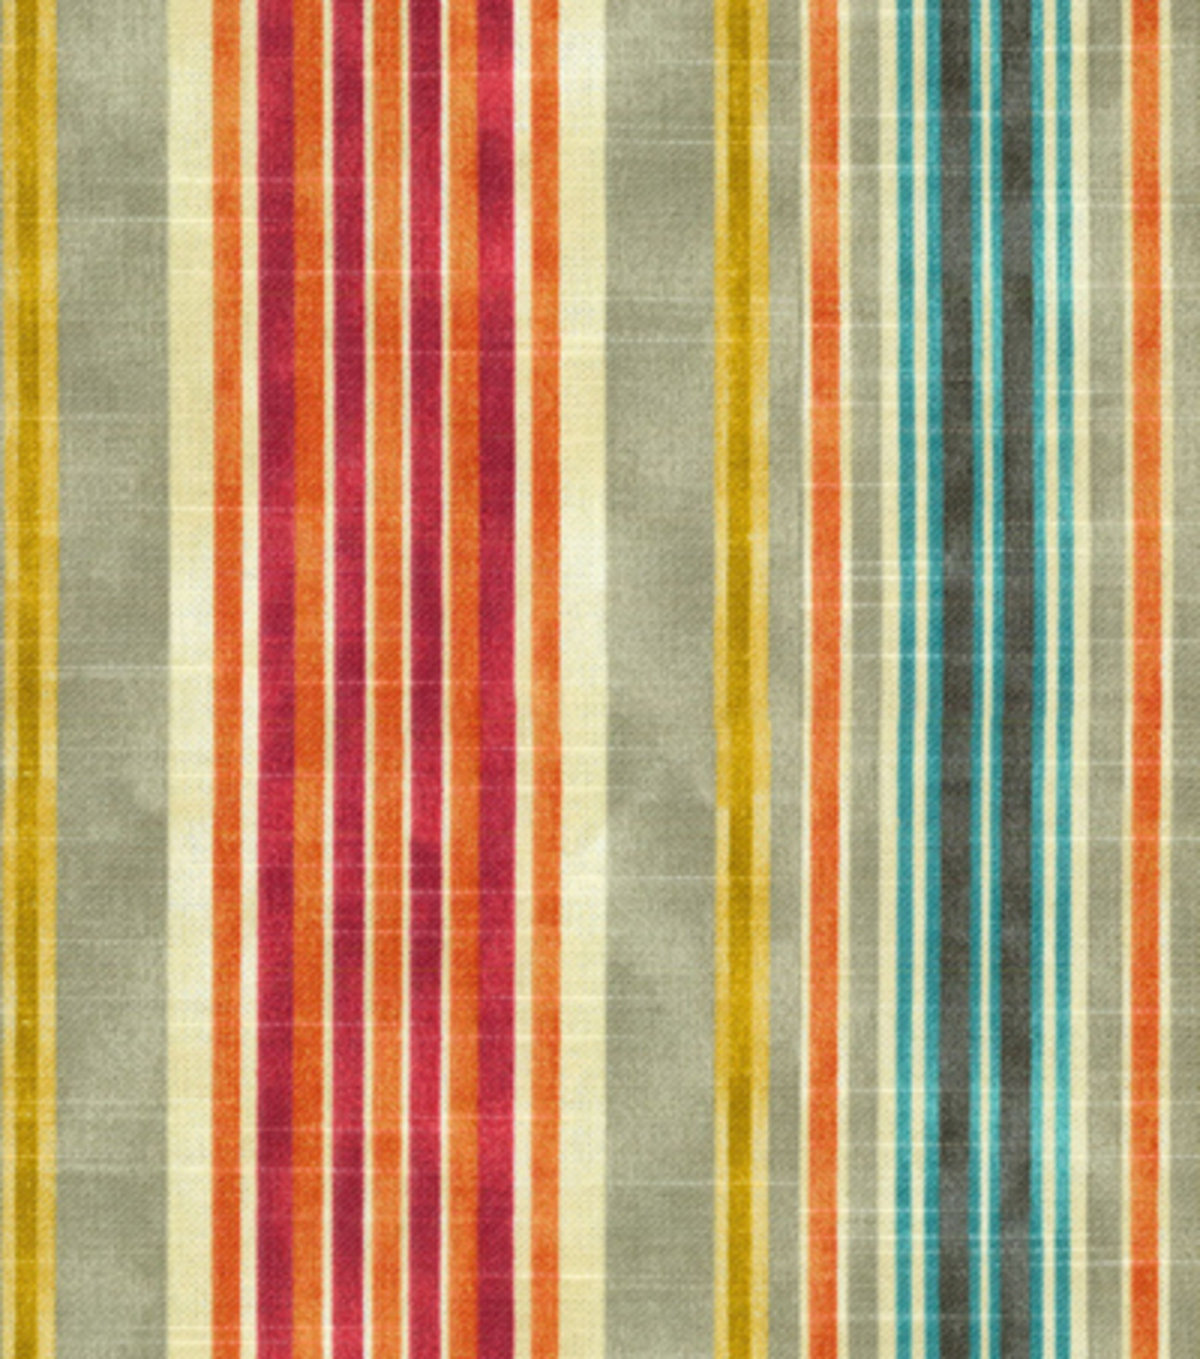 Home Decor 8\u0022x8\u0022 Fabric Swatch-HGTV HOME One Way Fog